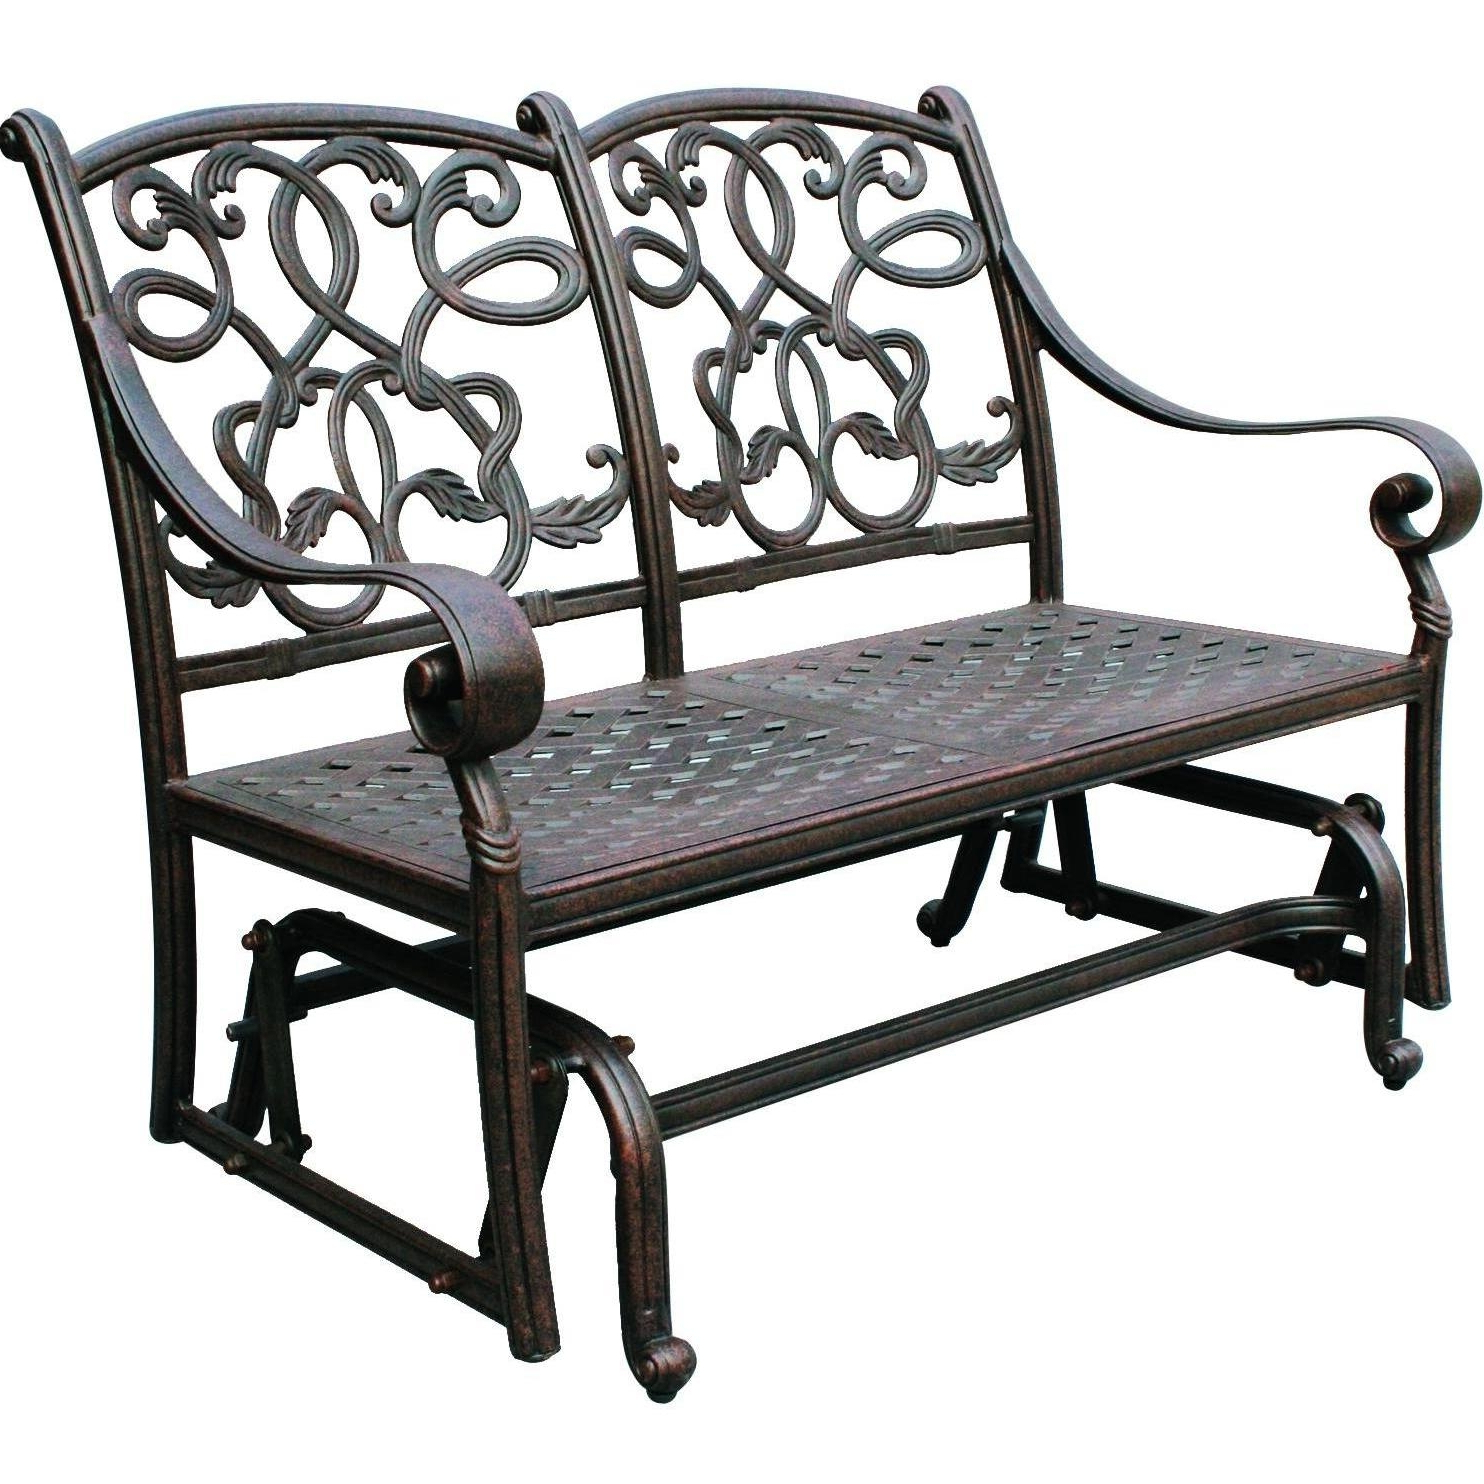 Aluminum Porch Glider Cushions Pertaining To Well Known Loveseat Glider Benches With Cushions (View 30 of 30)